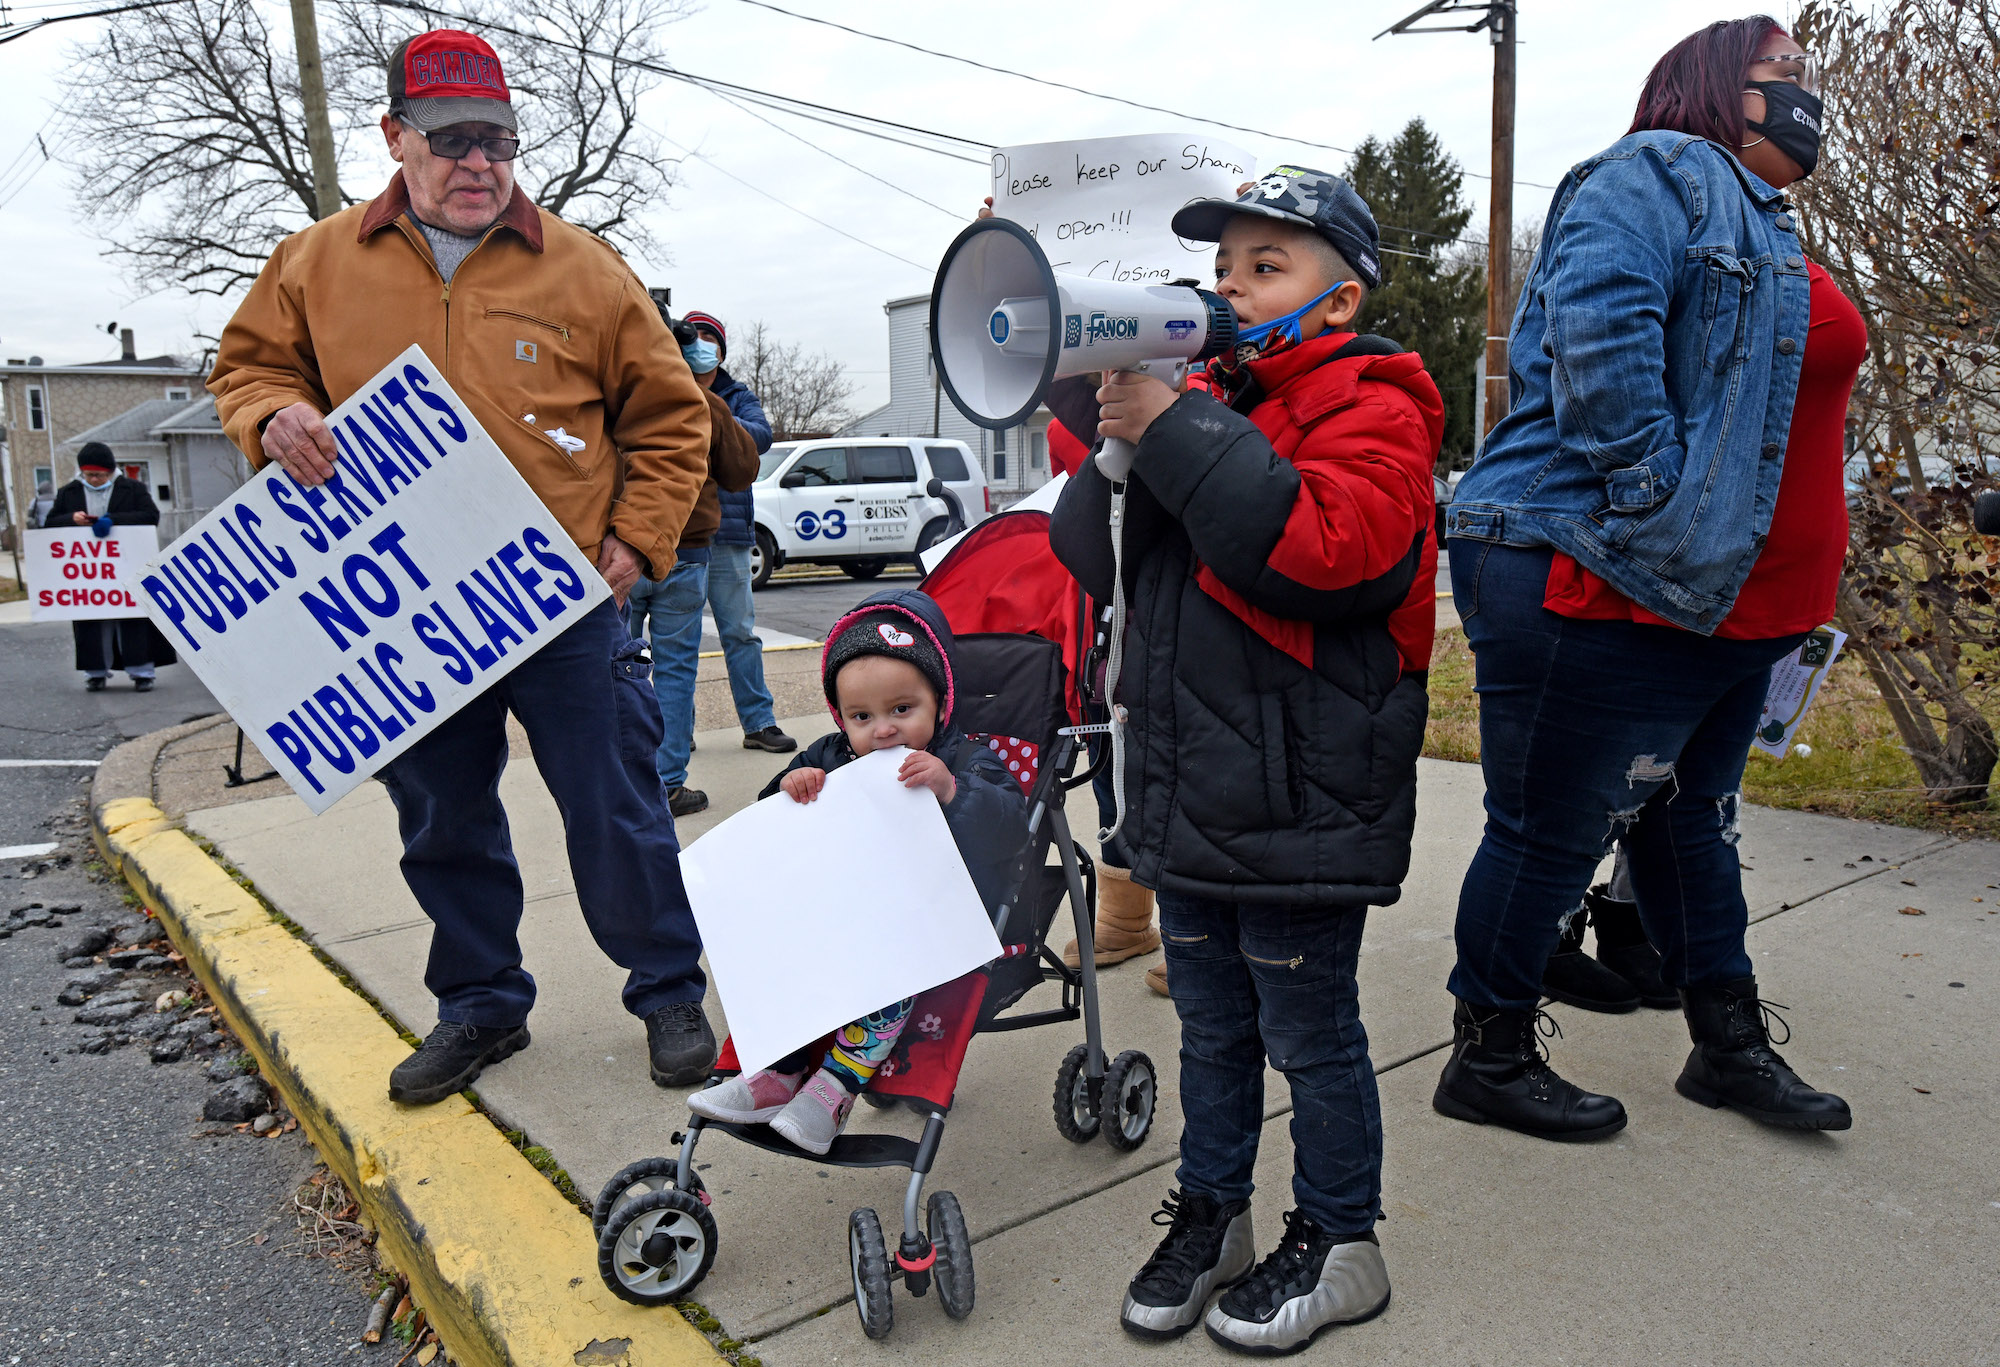 Activist Eulisis Delgado, left, protests school closures with children and their parents in front of Harry C. Sharp Elementary School